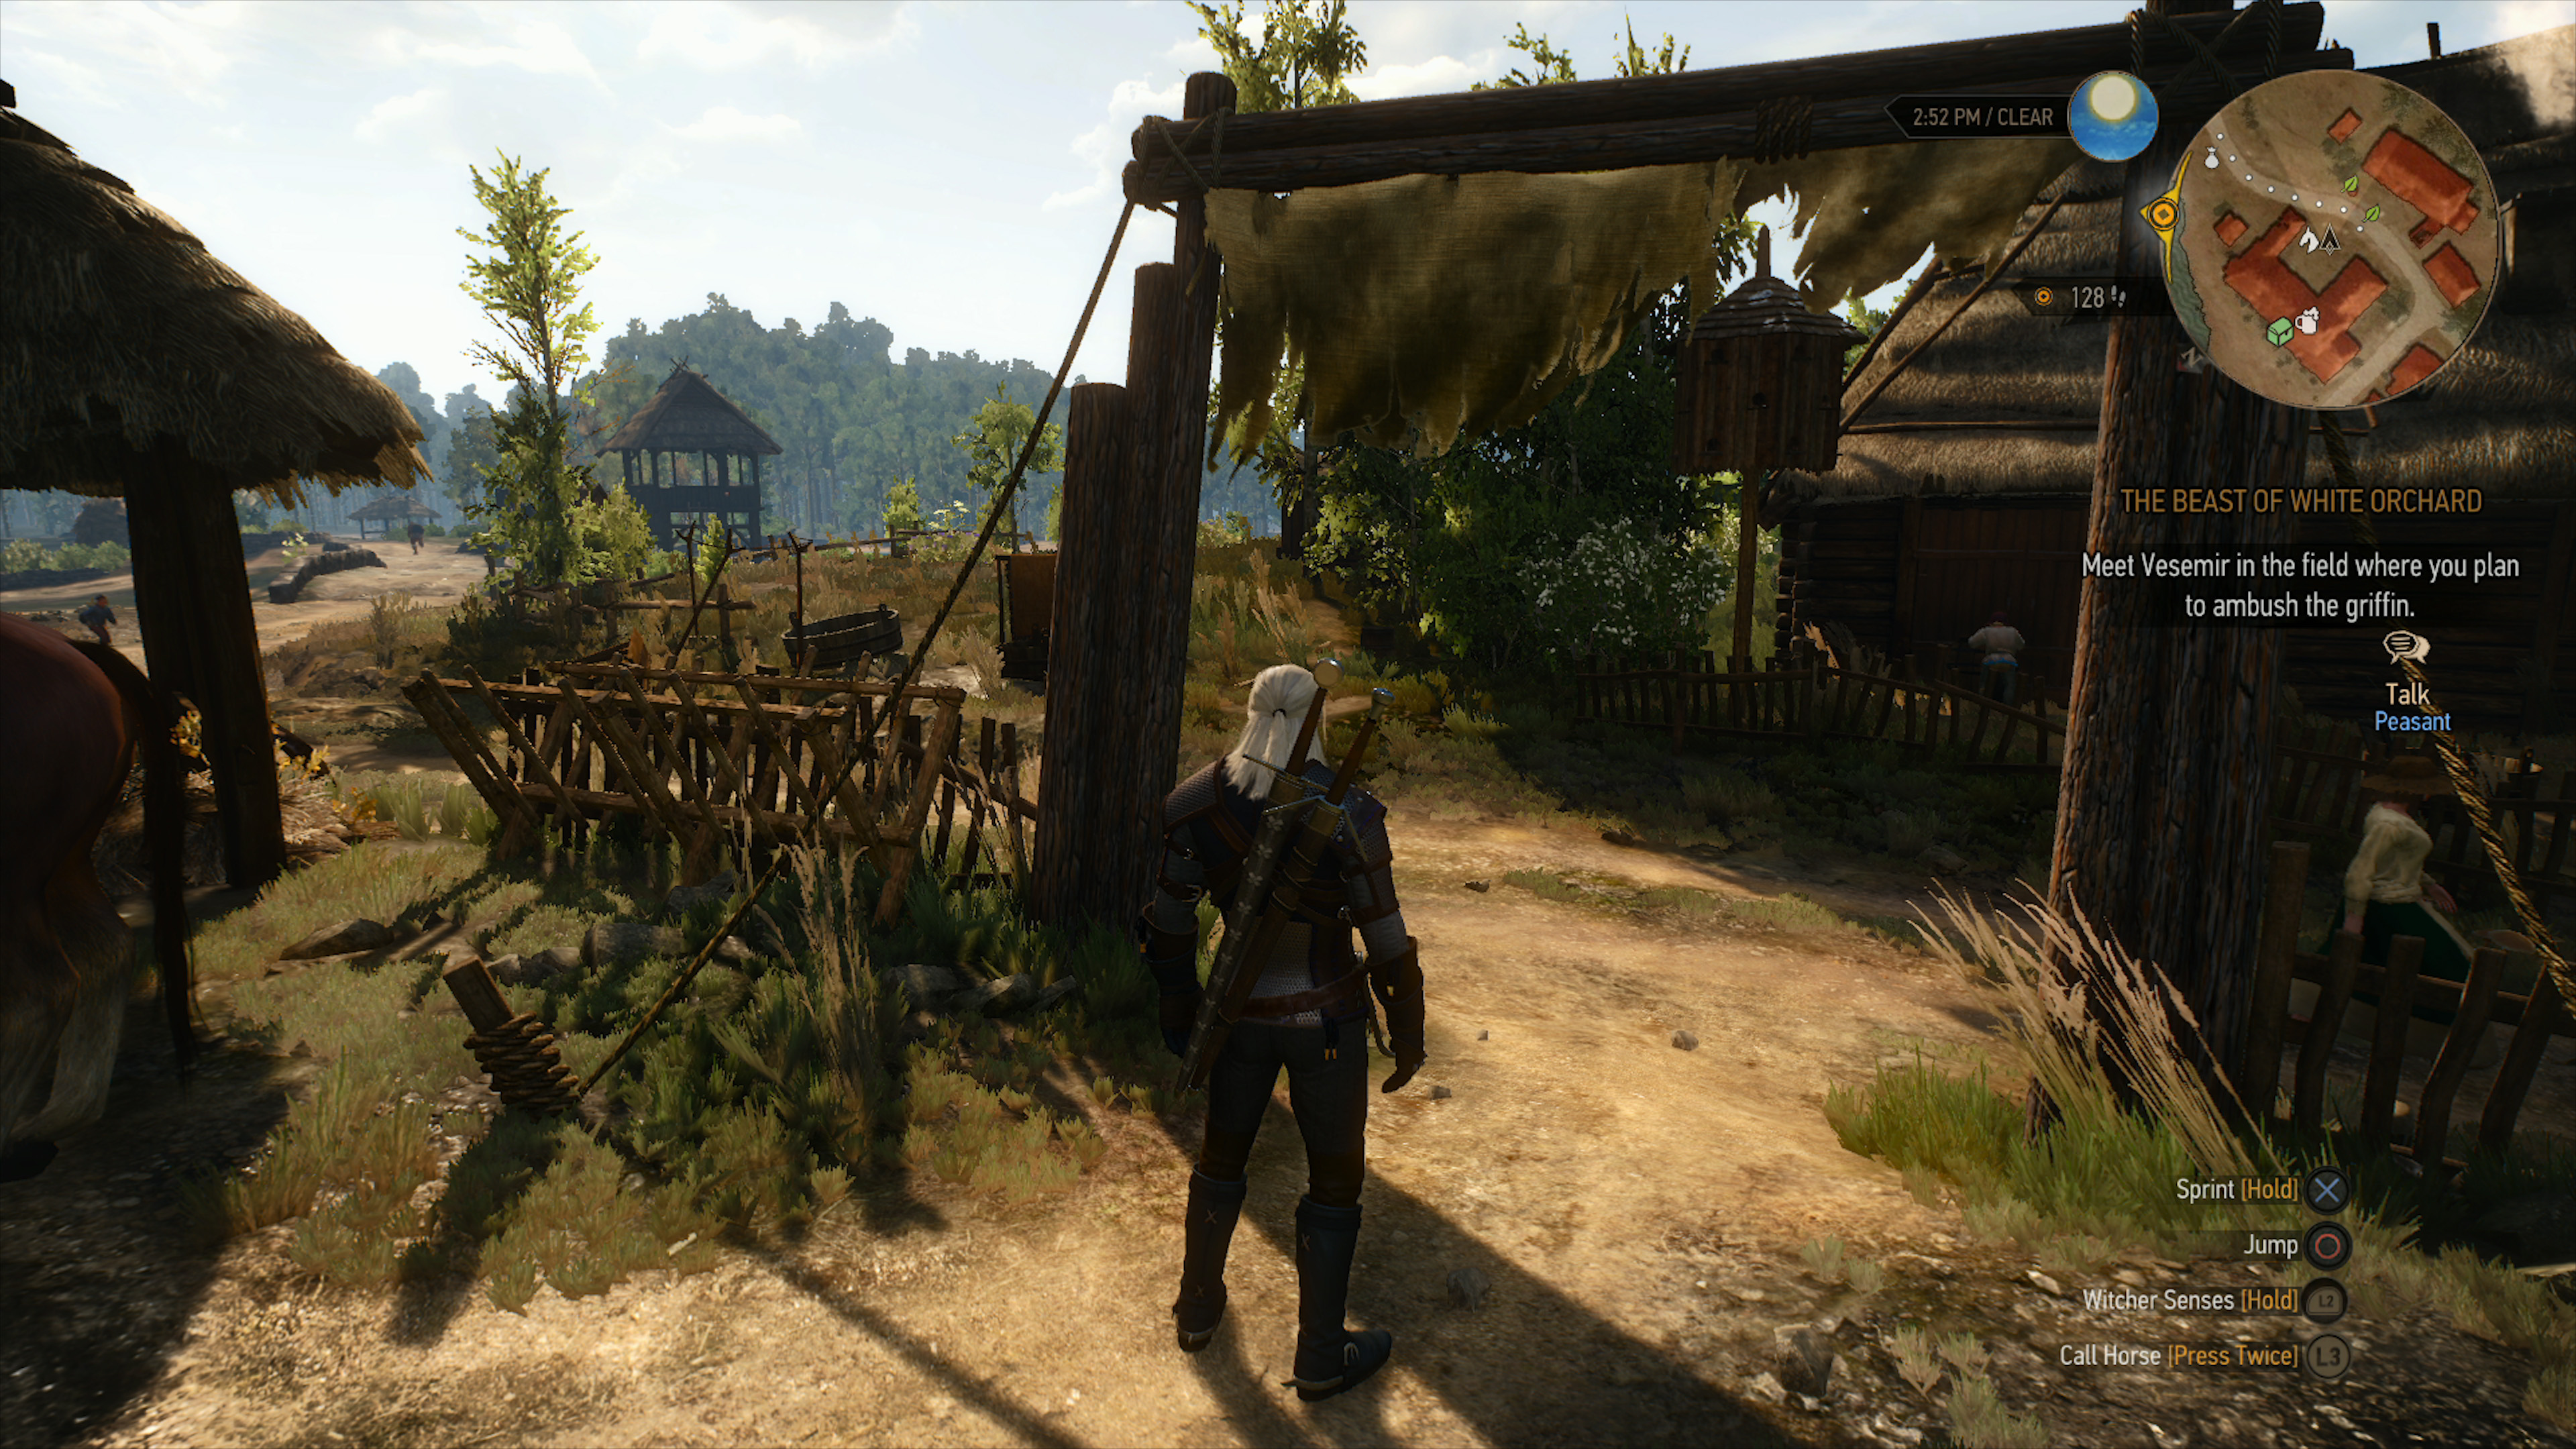 The Witcher 3 now supports PS4 Pro increasing the native resolution to 2160p via checkerboarding while in its 4K output mode Thankfully this also benefits